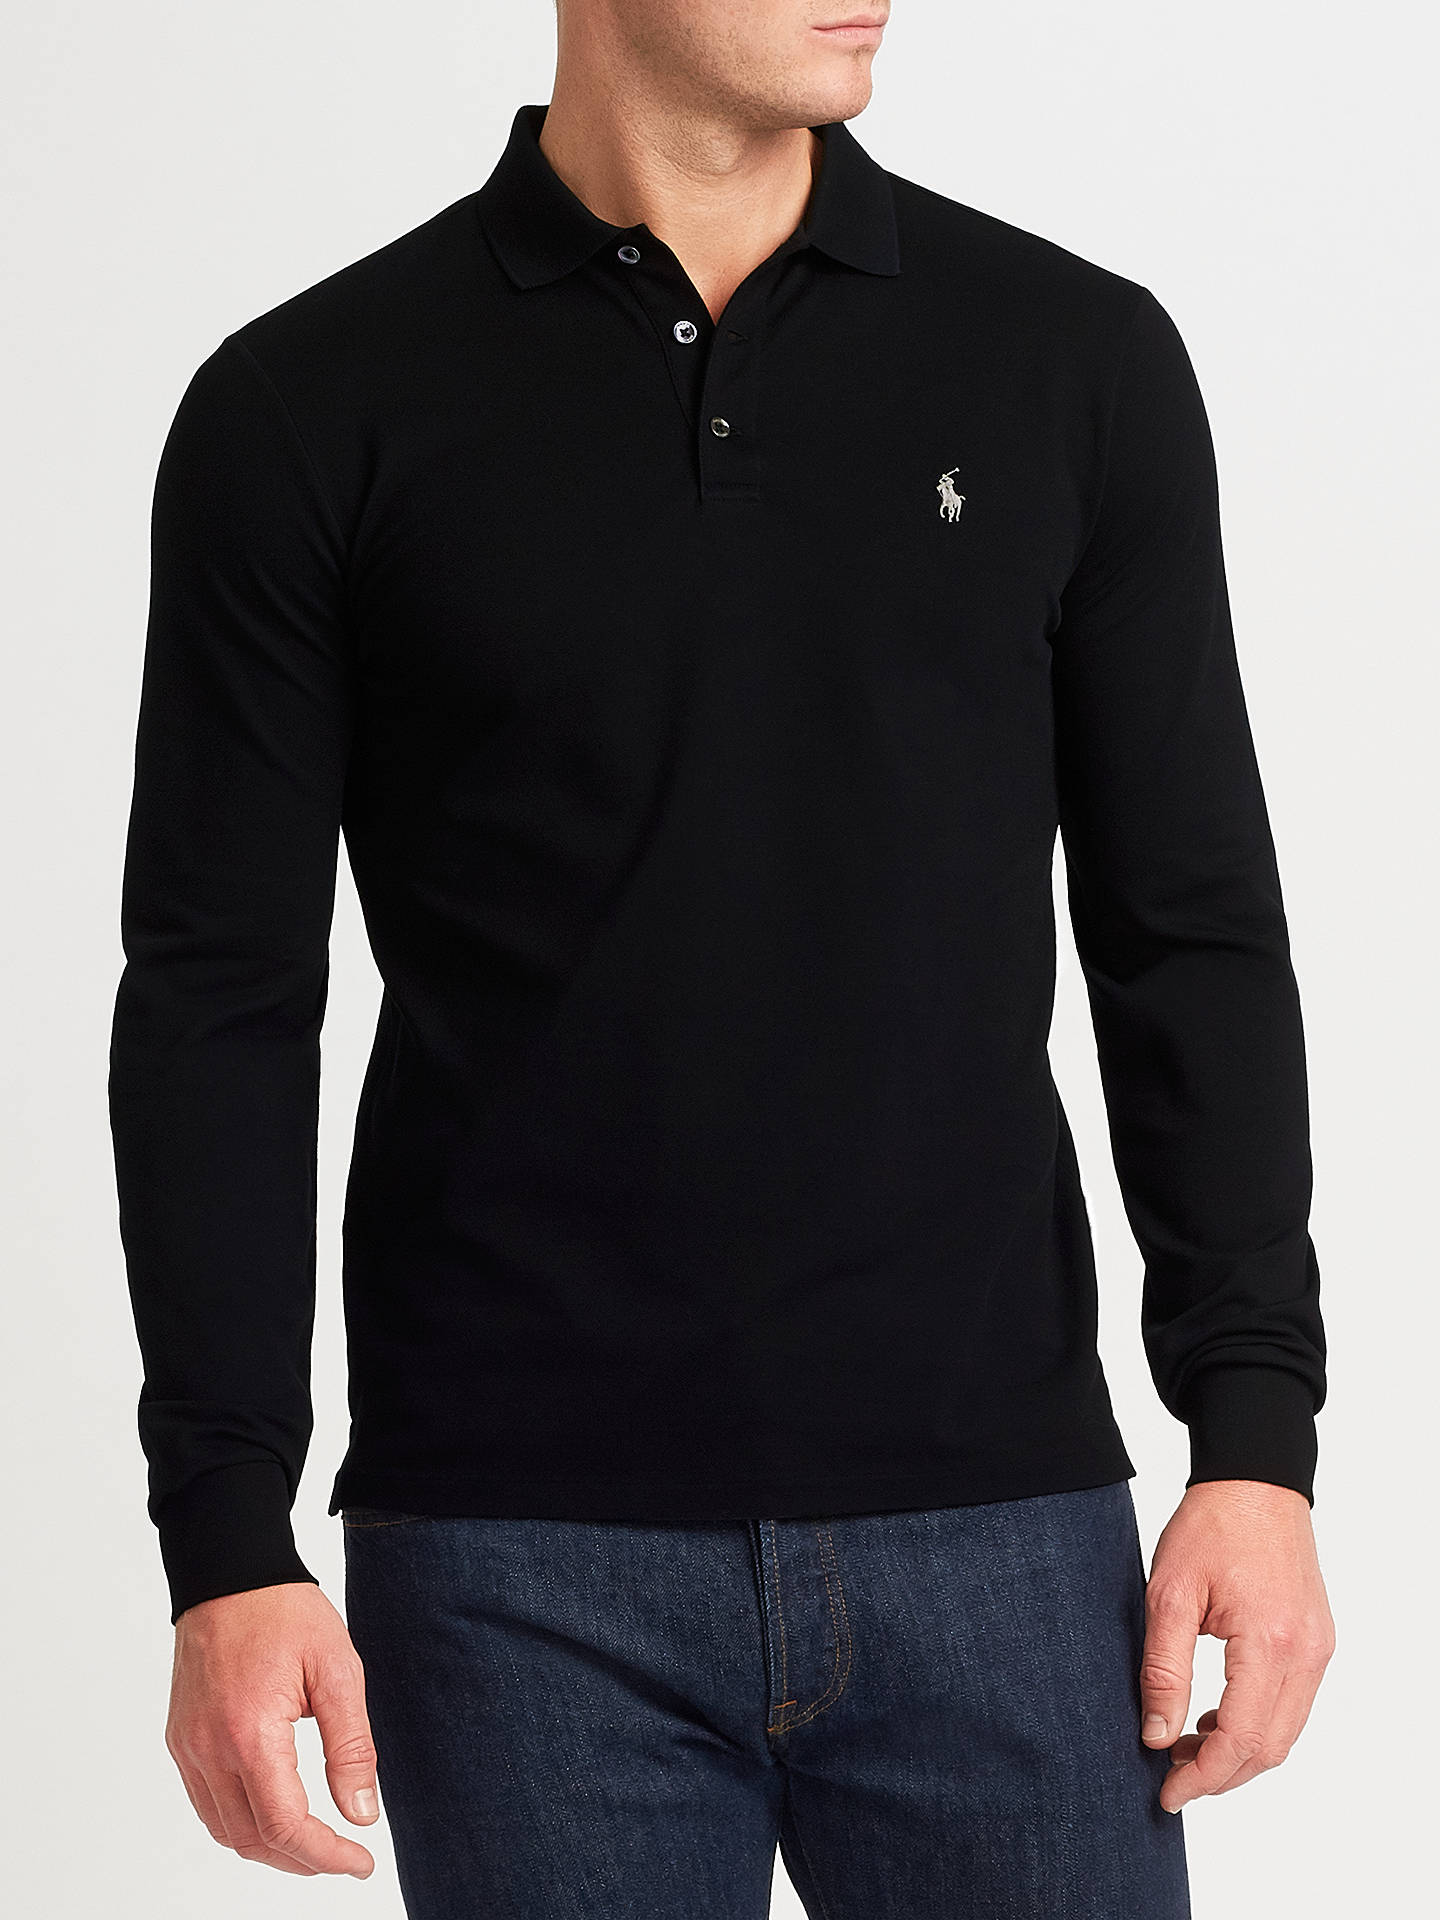 34368ace5 Buy Polo Ralph Lauren Long Sleeve Polo Top, Polo Black, XL Online at  johnlewis ...